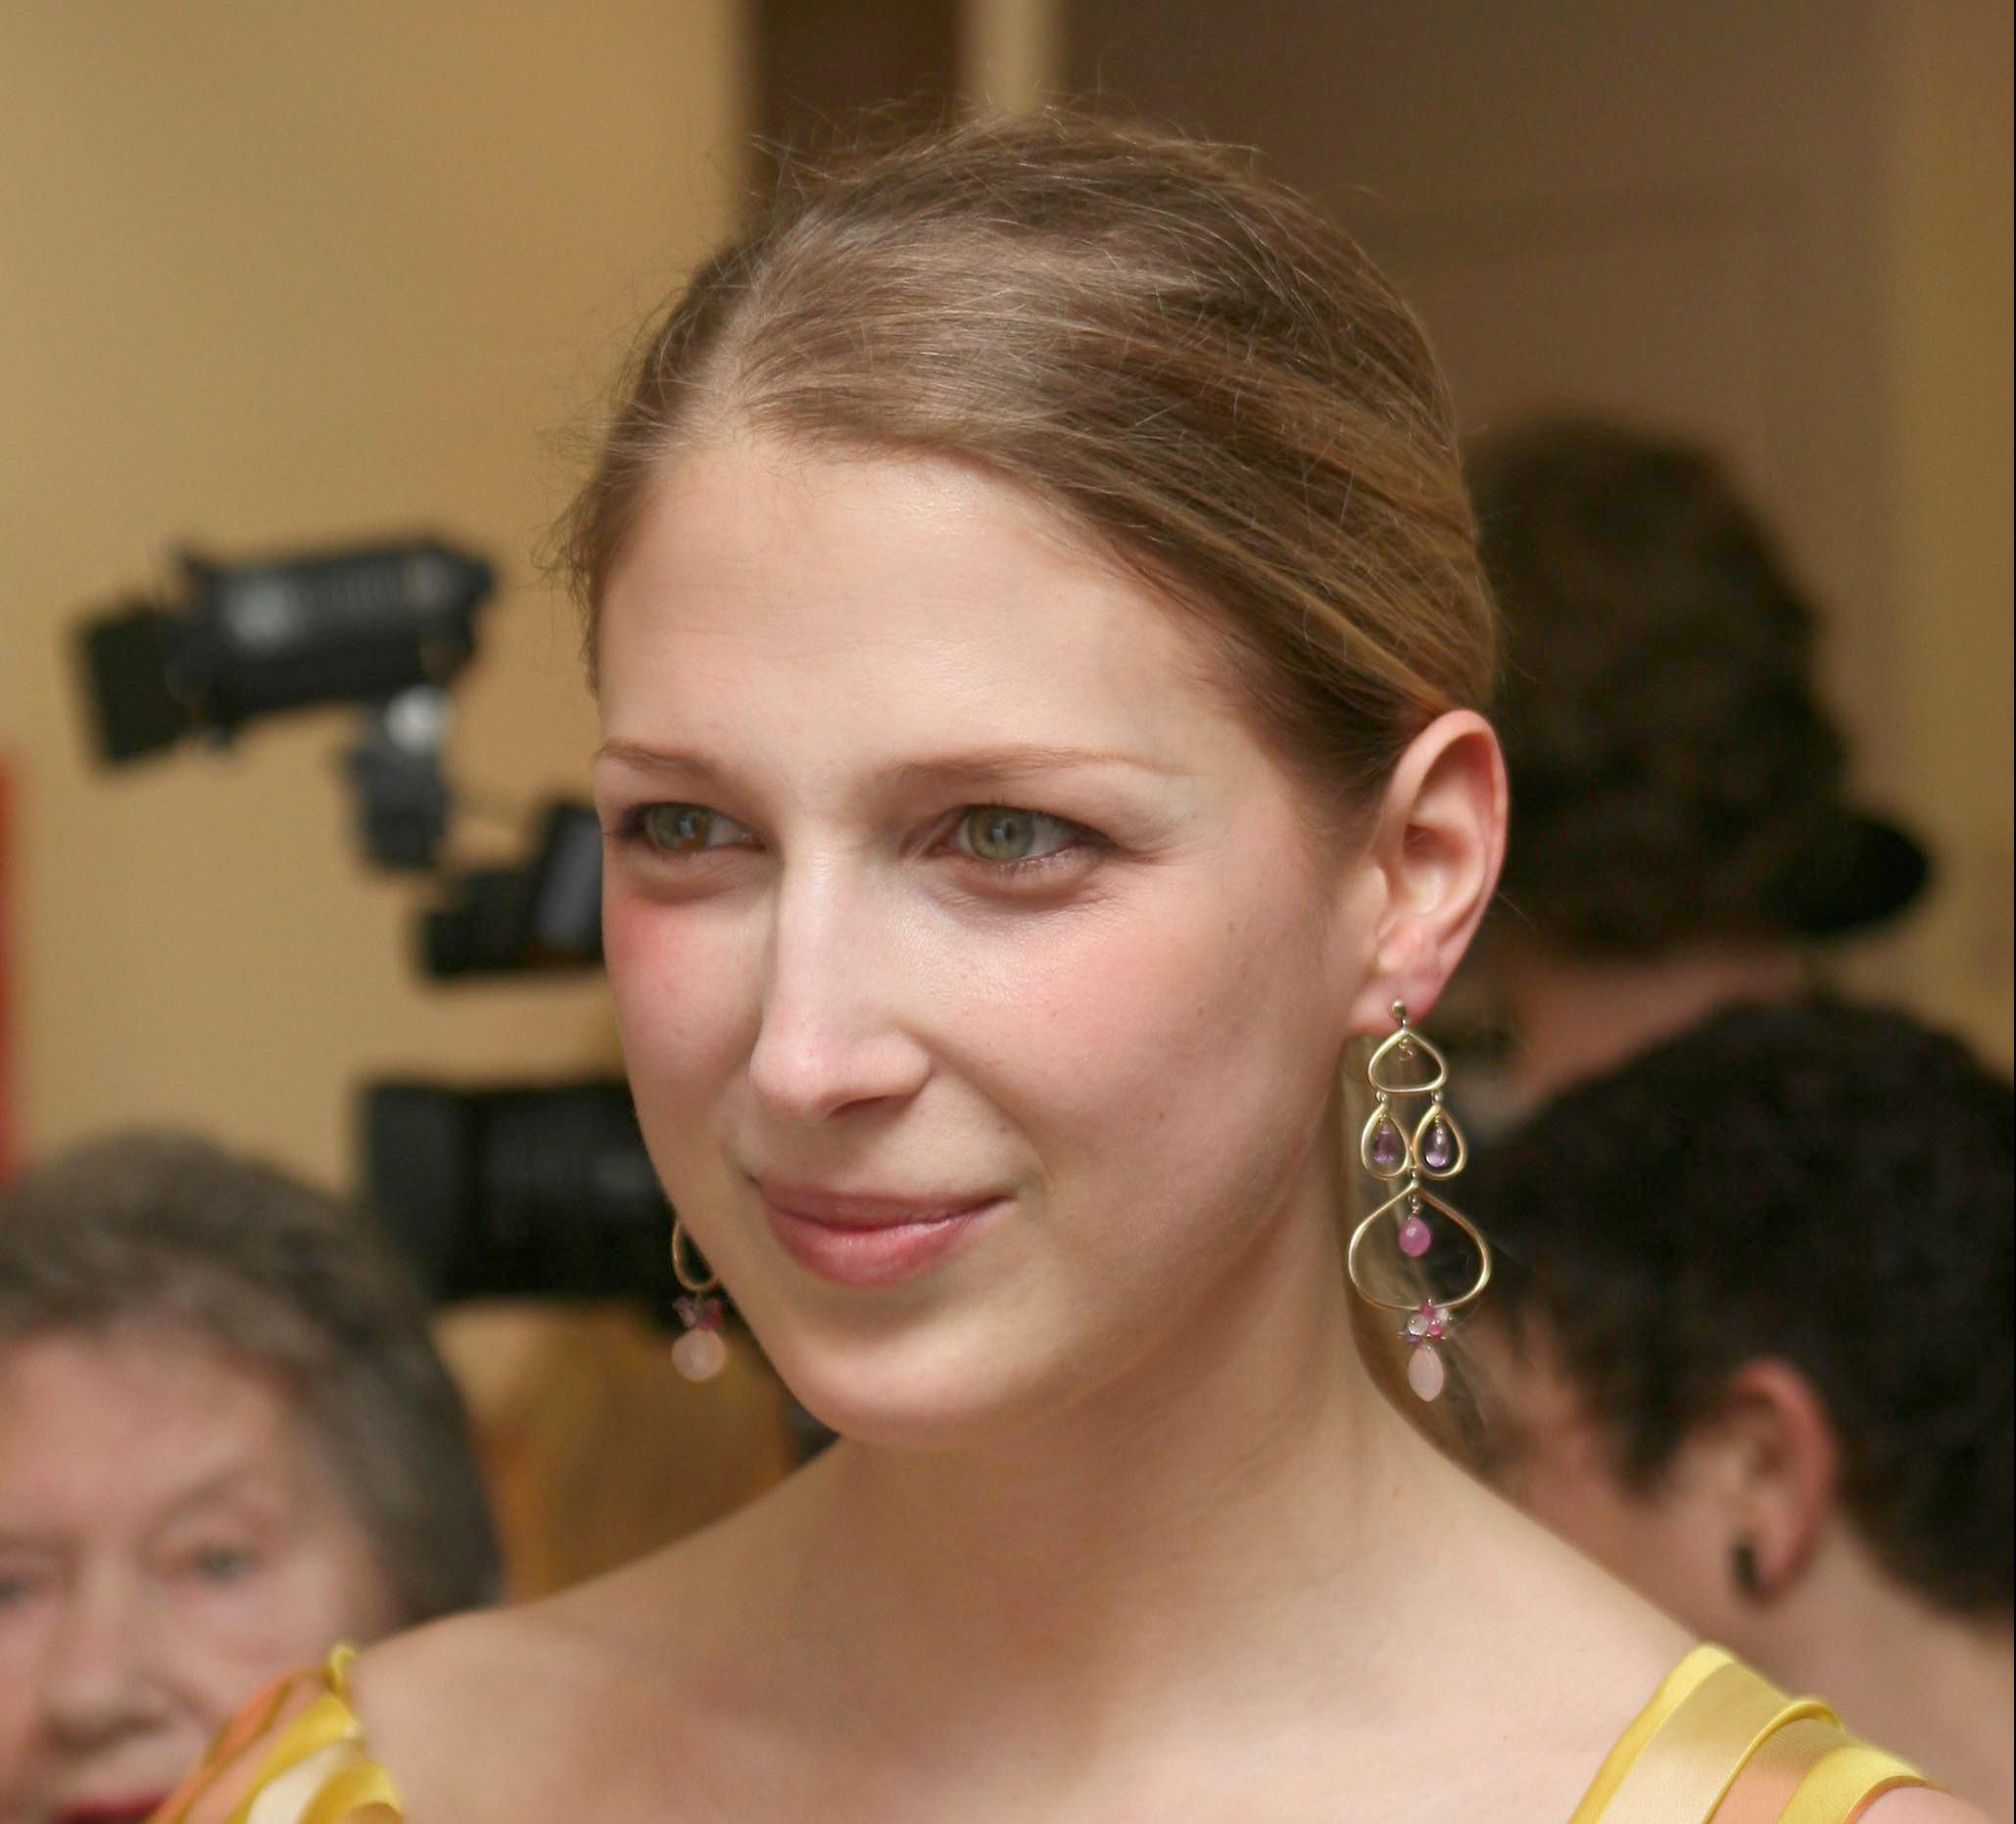 Who is Lady Gabriella Windsor and how is she related to the Queen and the Royal Family?